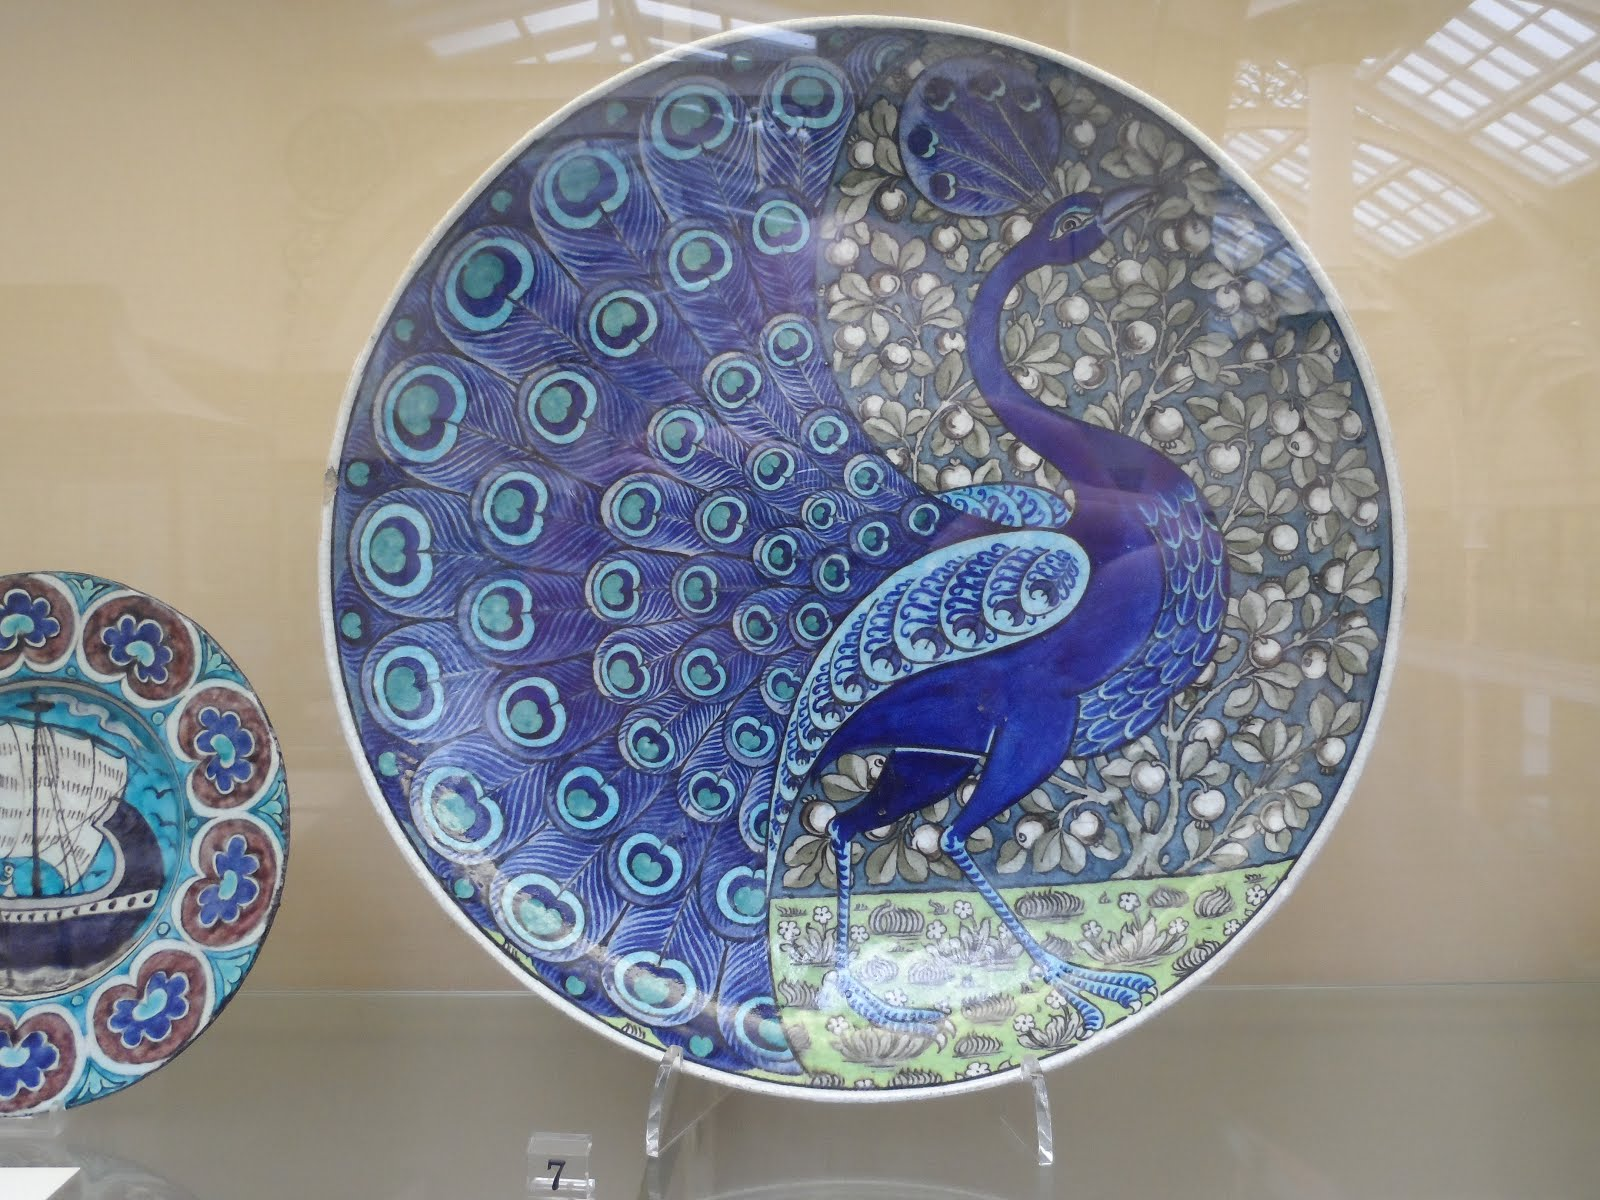 William De Morgan Iznik lustre platter